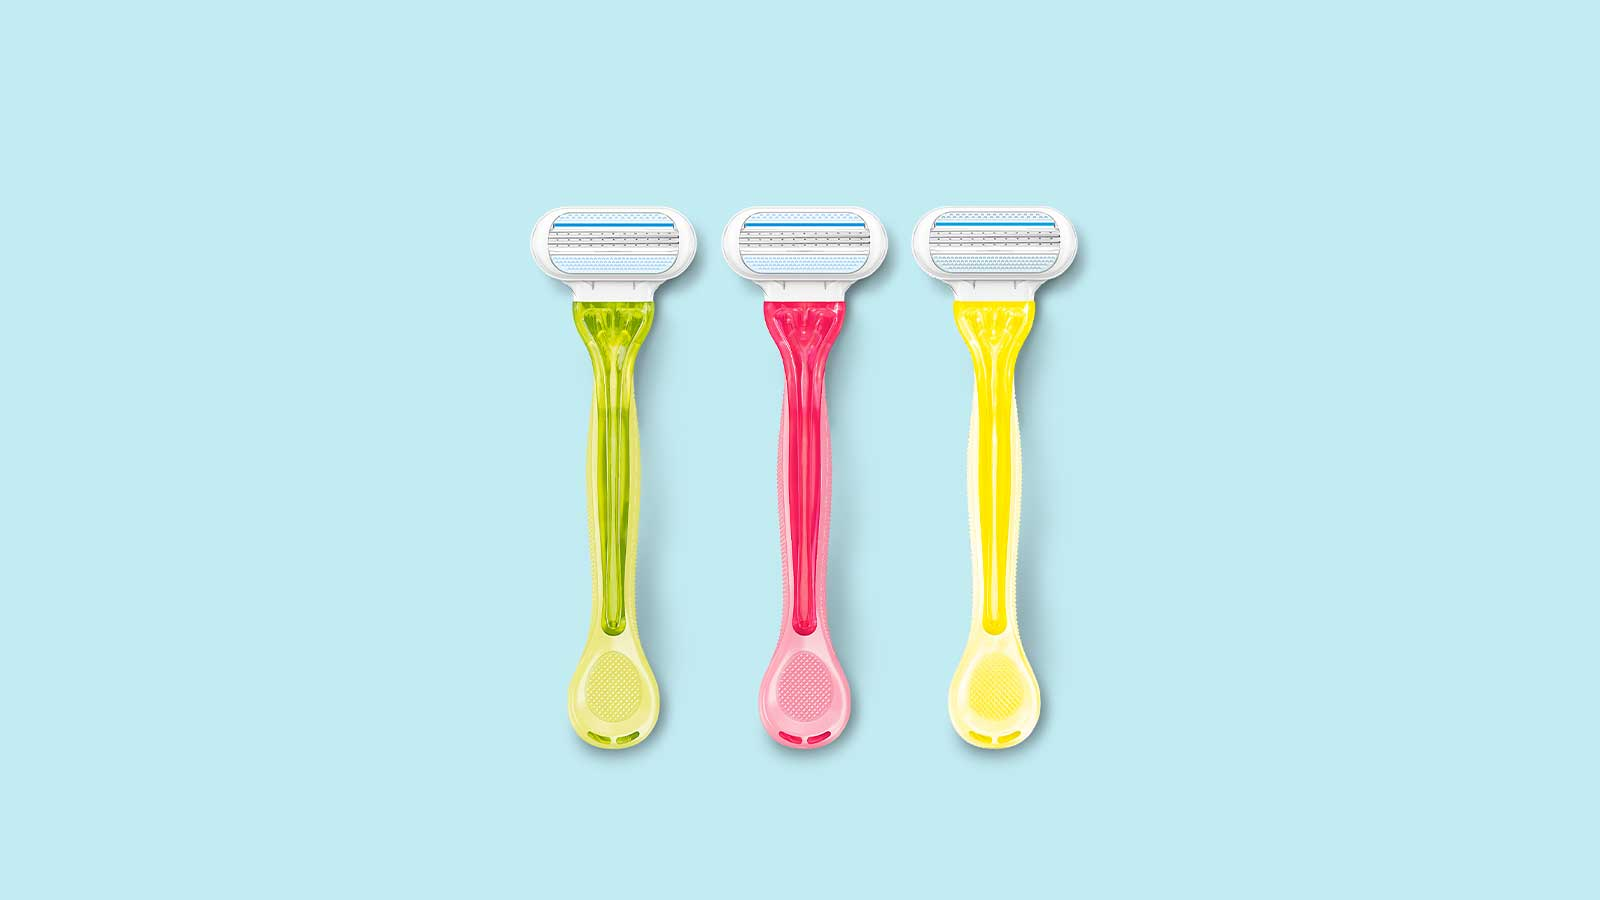 Different Types and Design of Razors